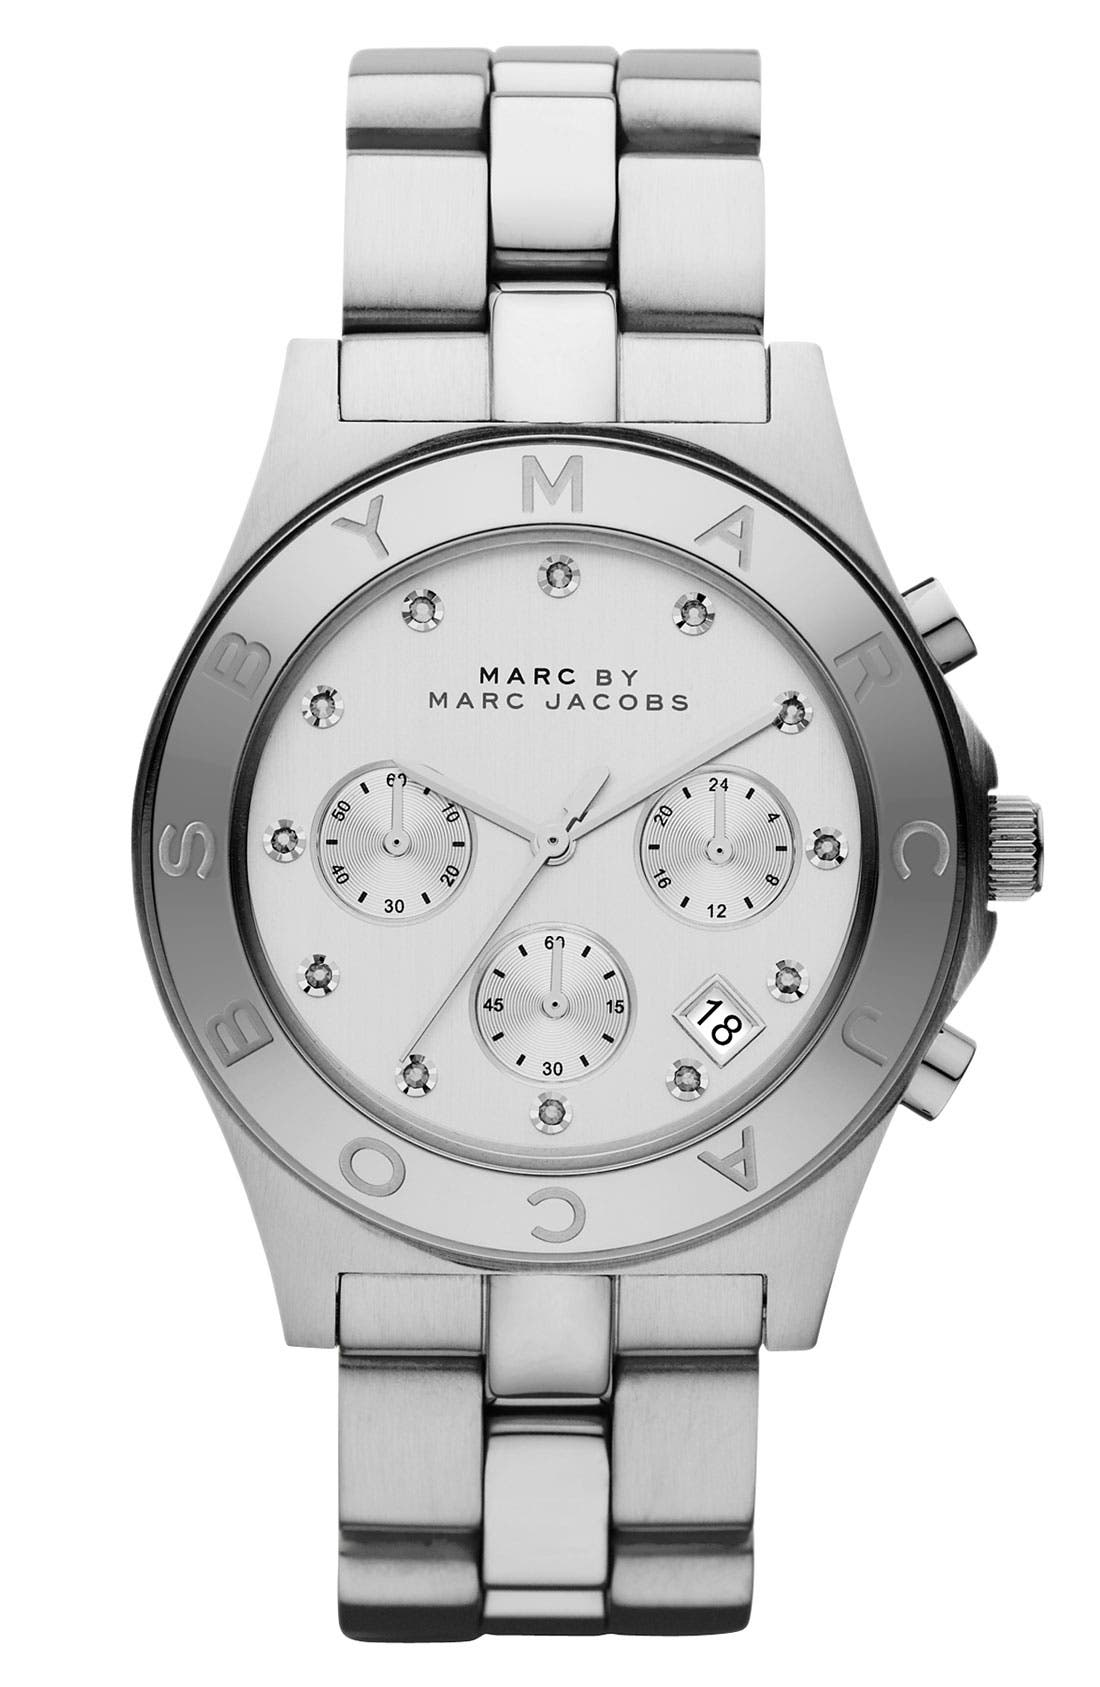 Main Image - MARC JACOBS 'Blade' Crystal Index Watch, 40mm